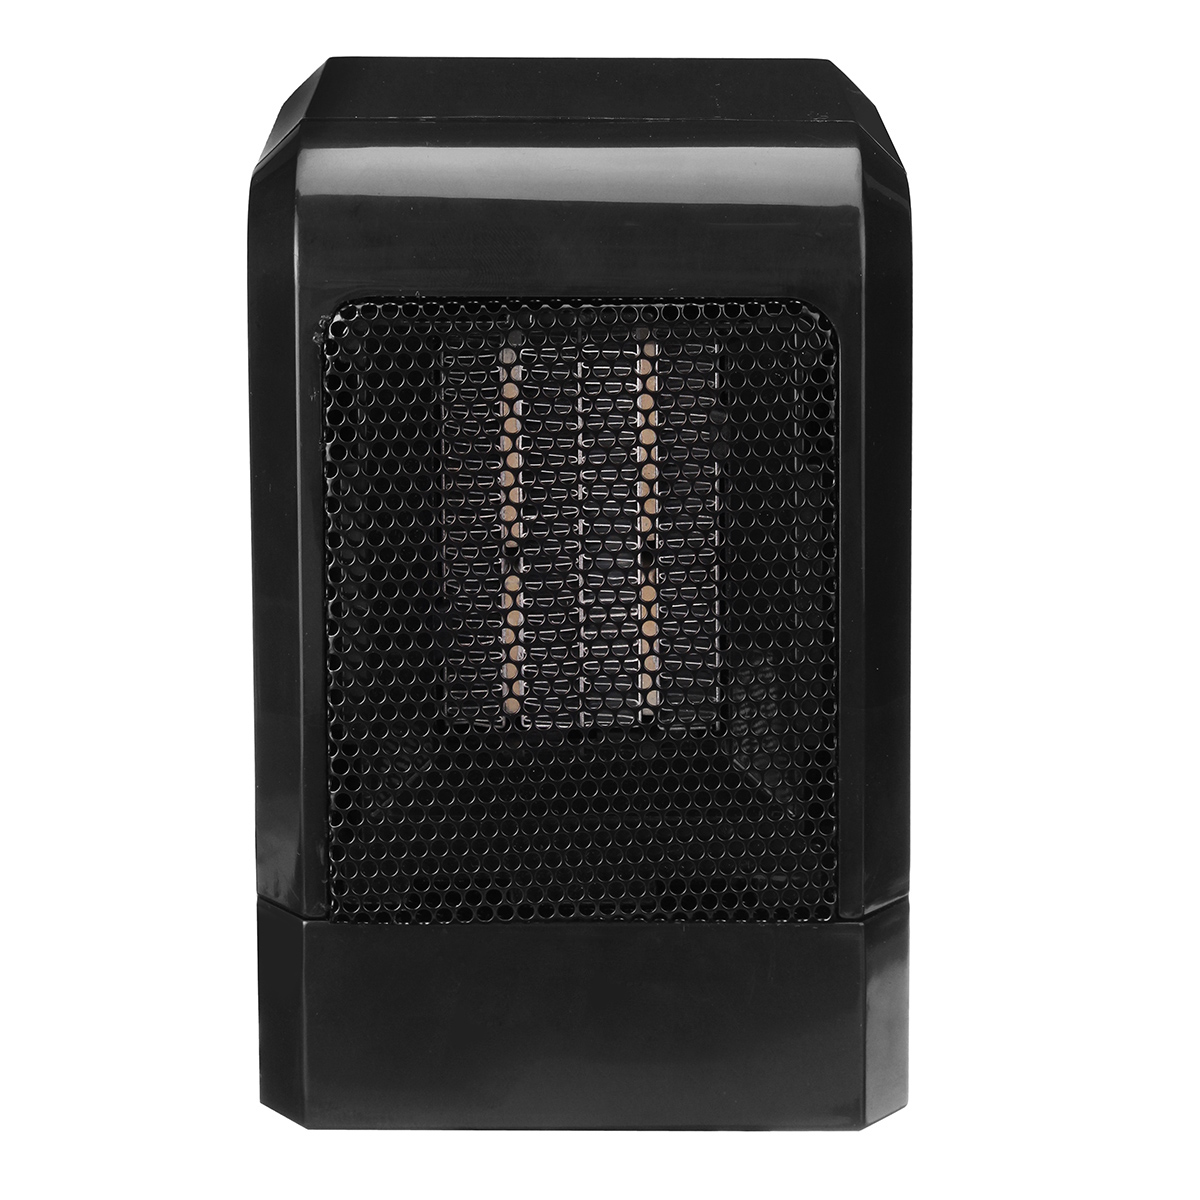 Space Heater 500W Mini Desktop Heater Ceramic PTC Heater Portable Desk Fan Heater